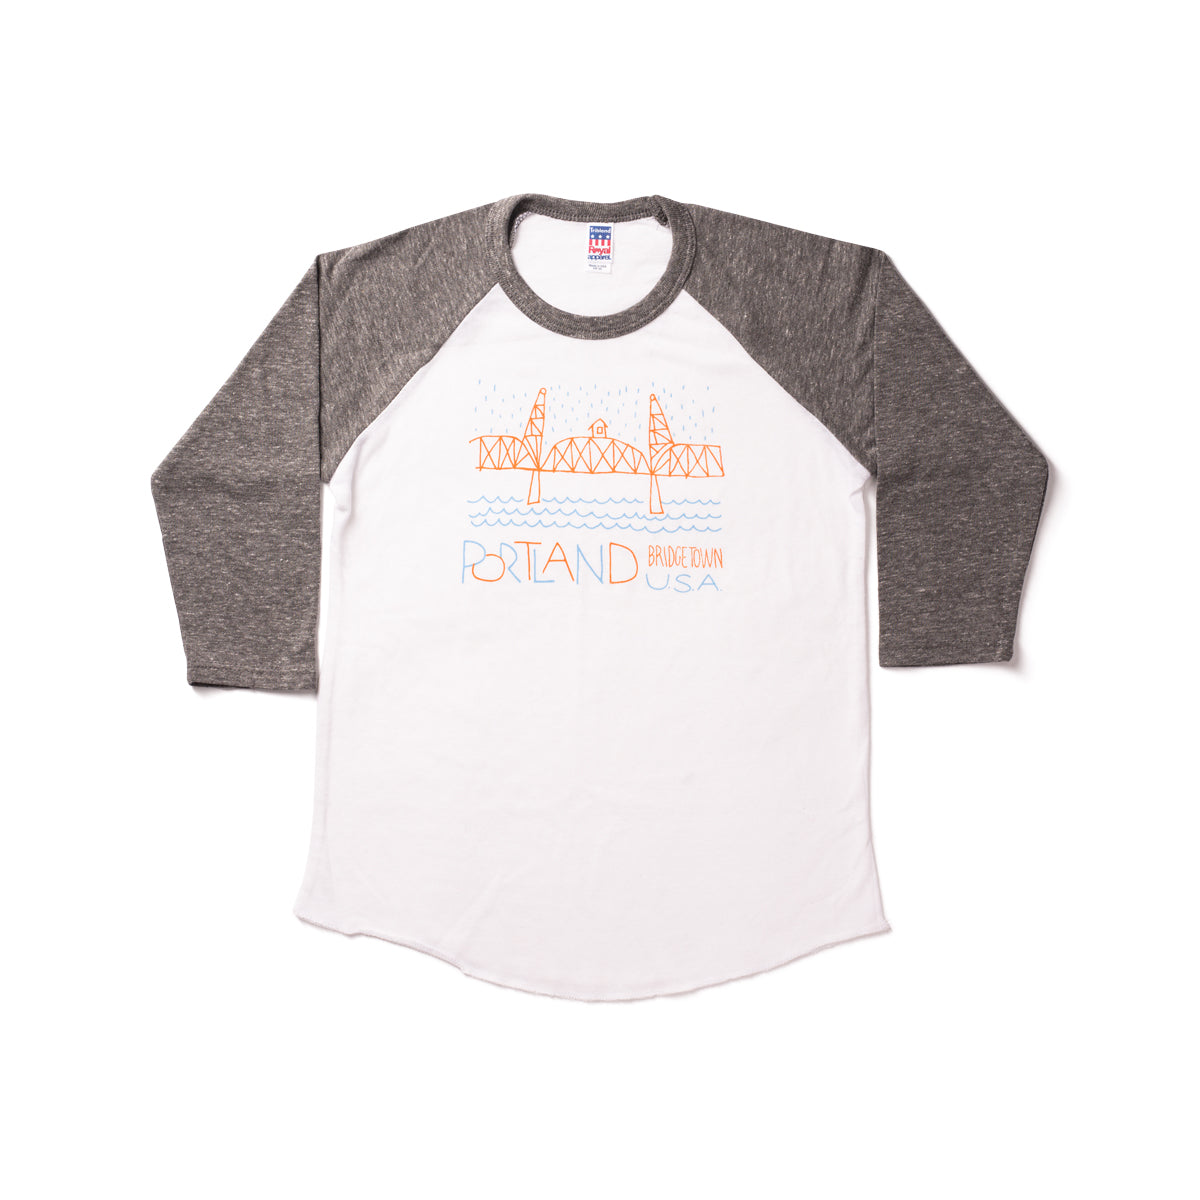 Bridgetown USA Kids Tee by Tender Loving Empire